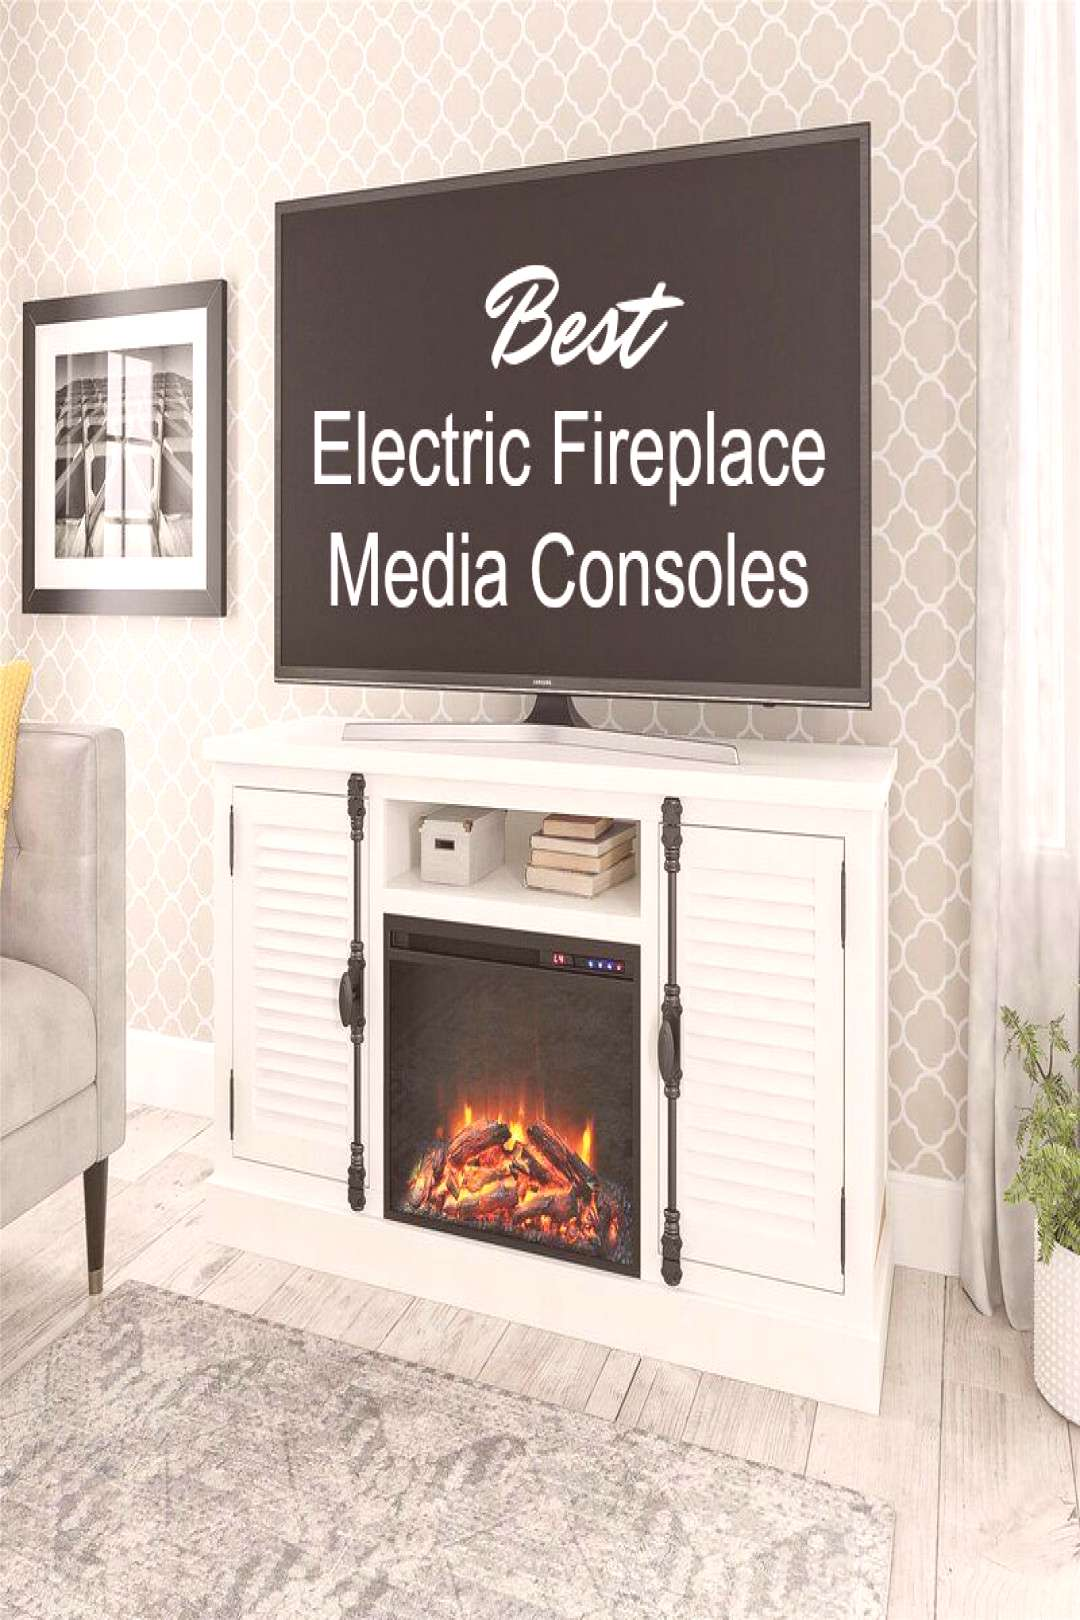 Best Electric Fireplace TV Media Consoles Best Electric Fireplace TV Media Consoles